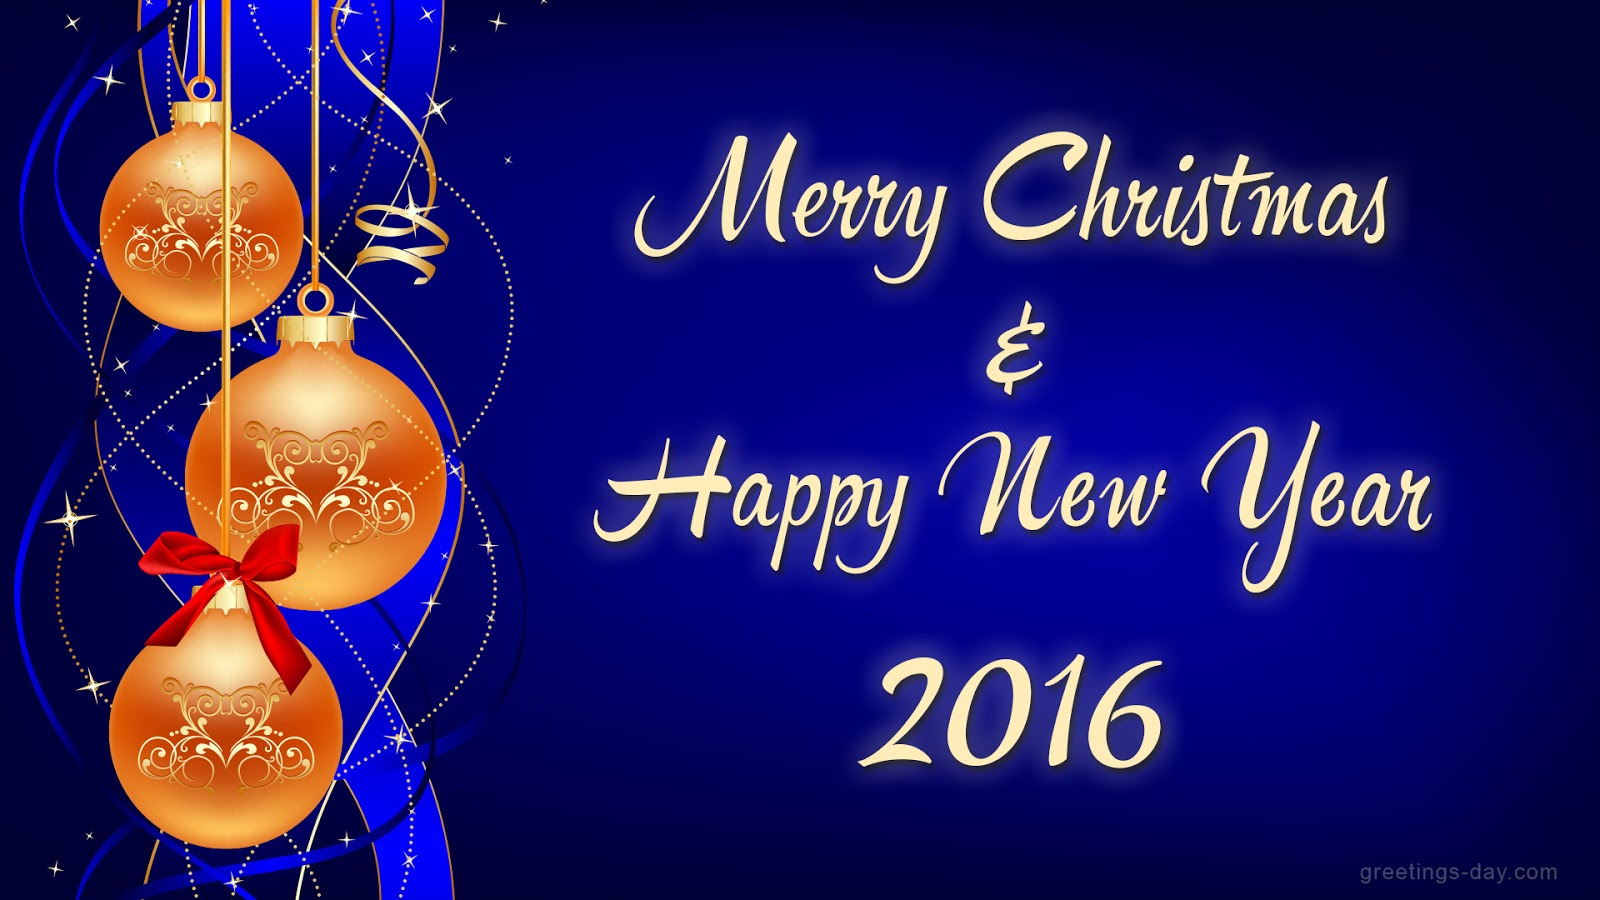 christmas day 2016 images - When Is Christmas Day 2016